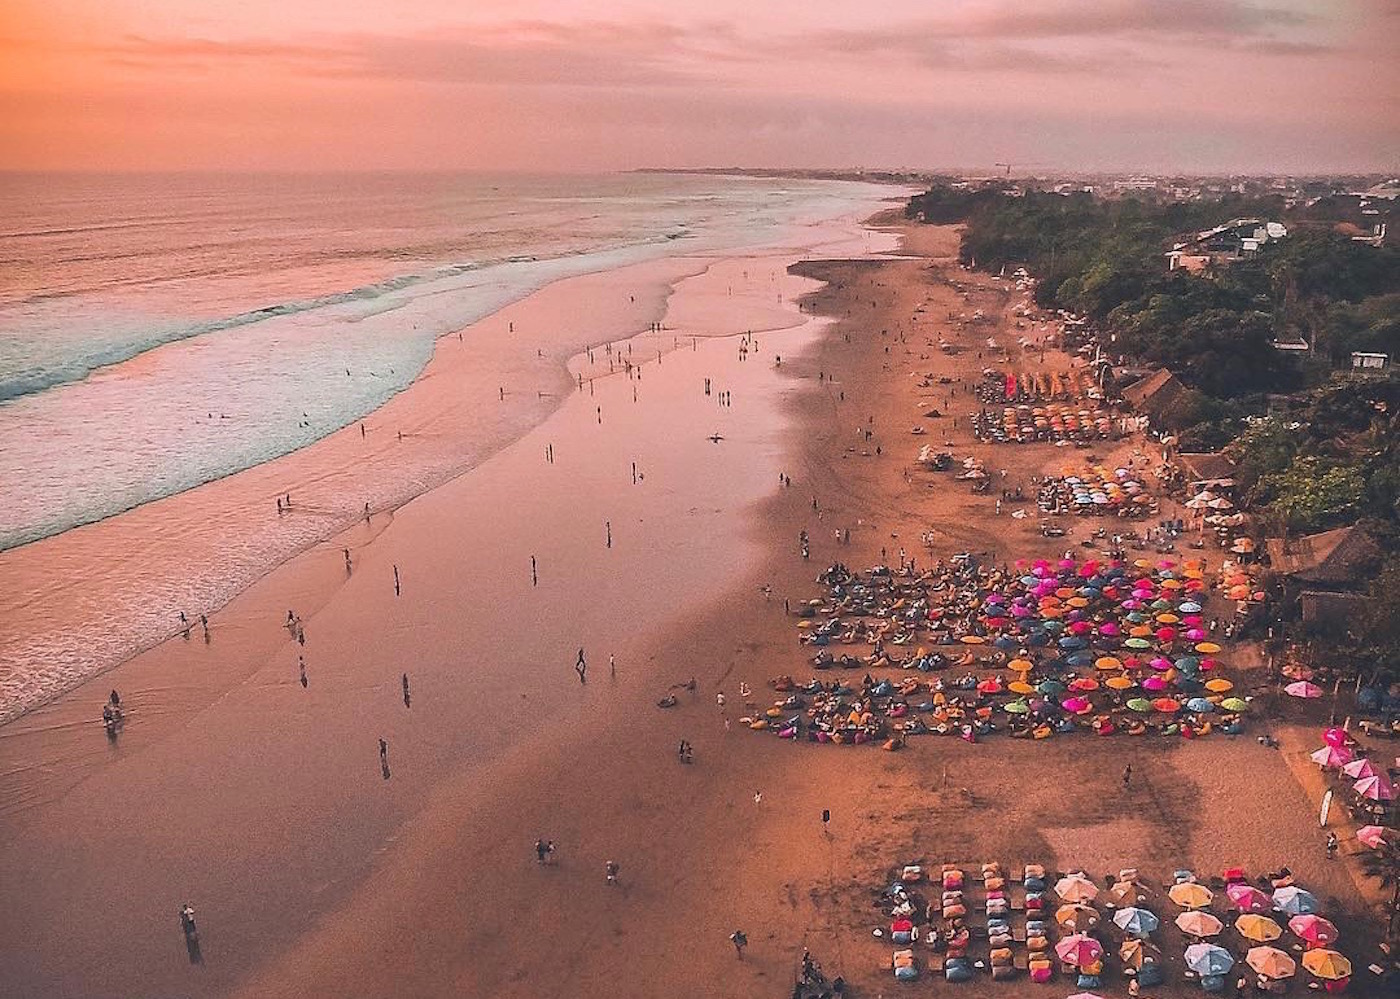 Sunset over the colourful Seminyak Beach in Bali, Indonesian